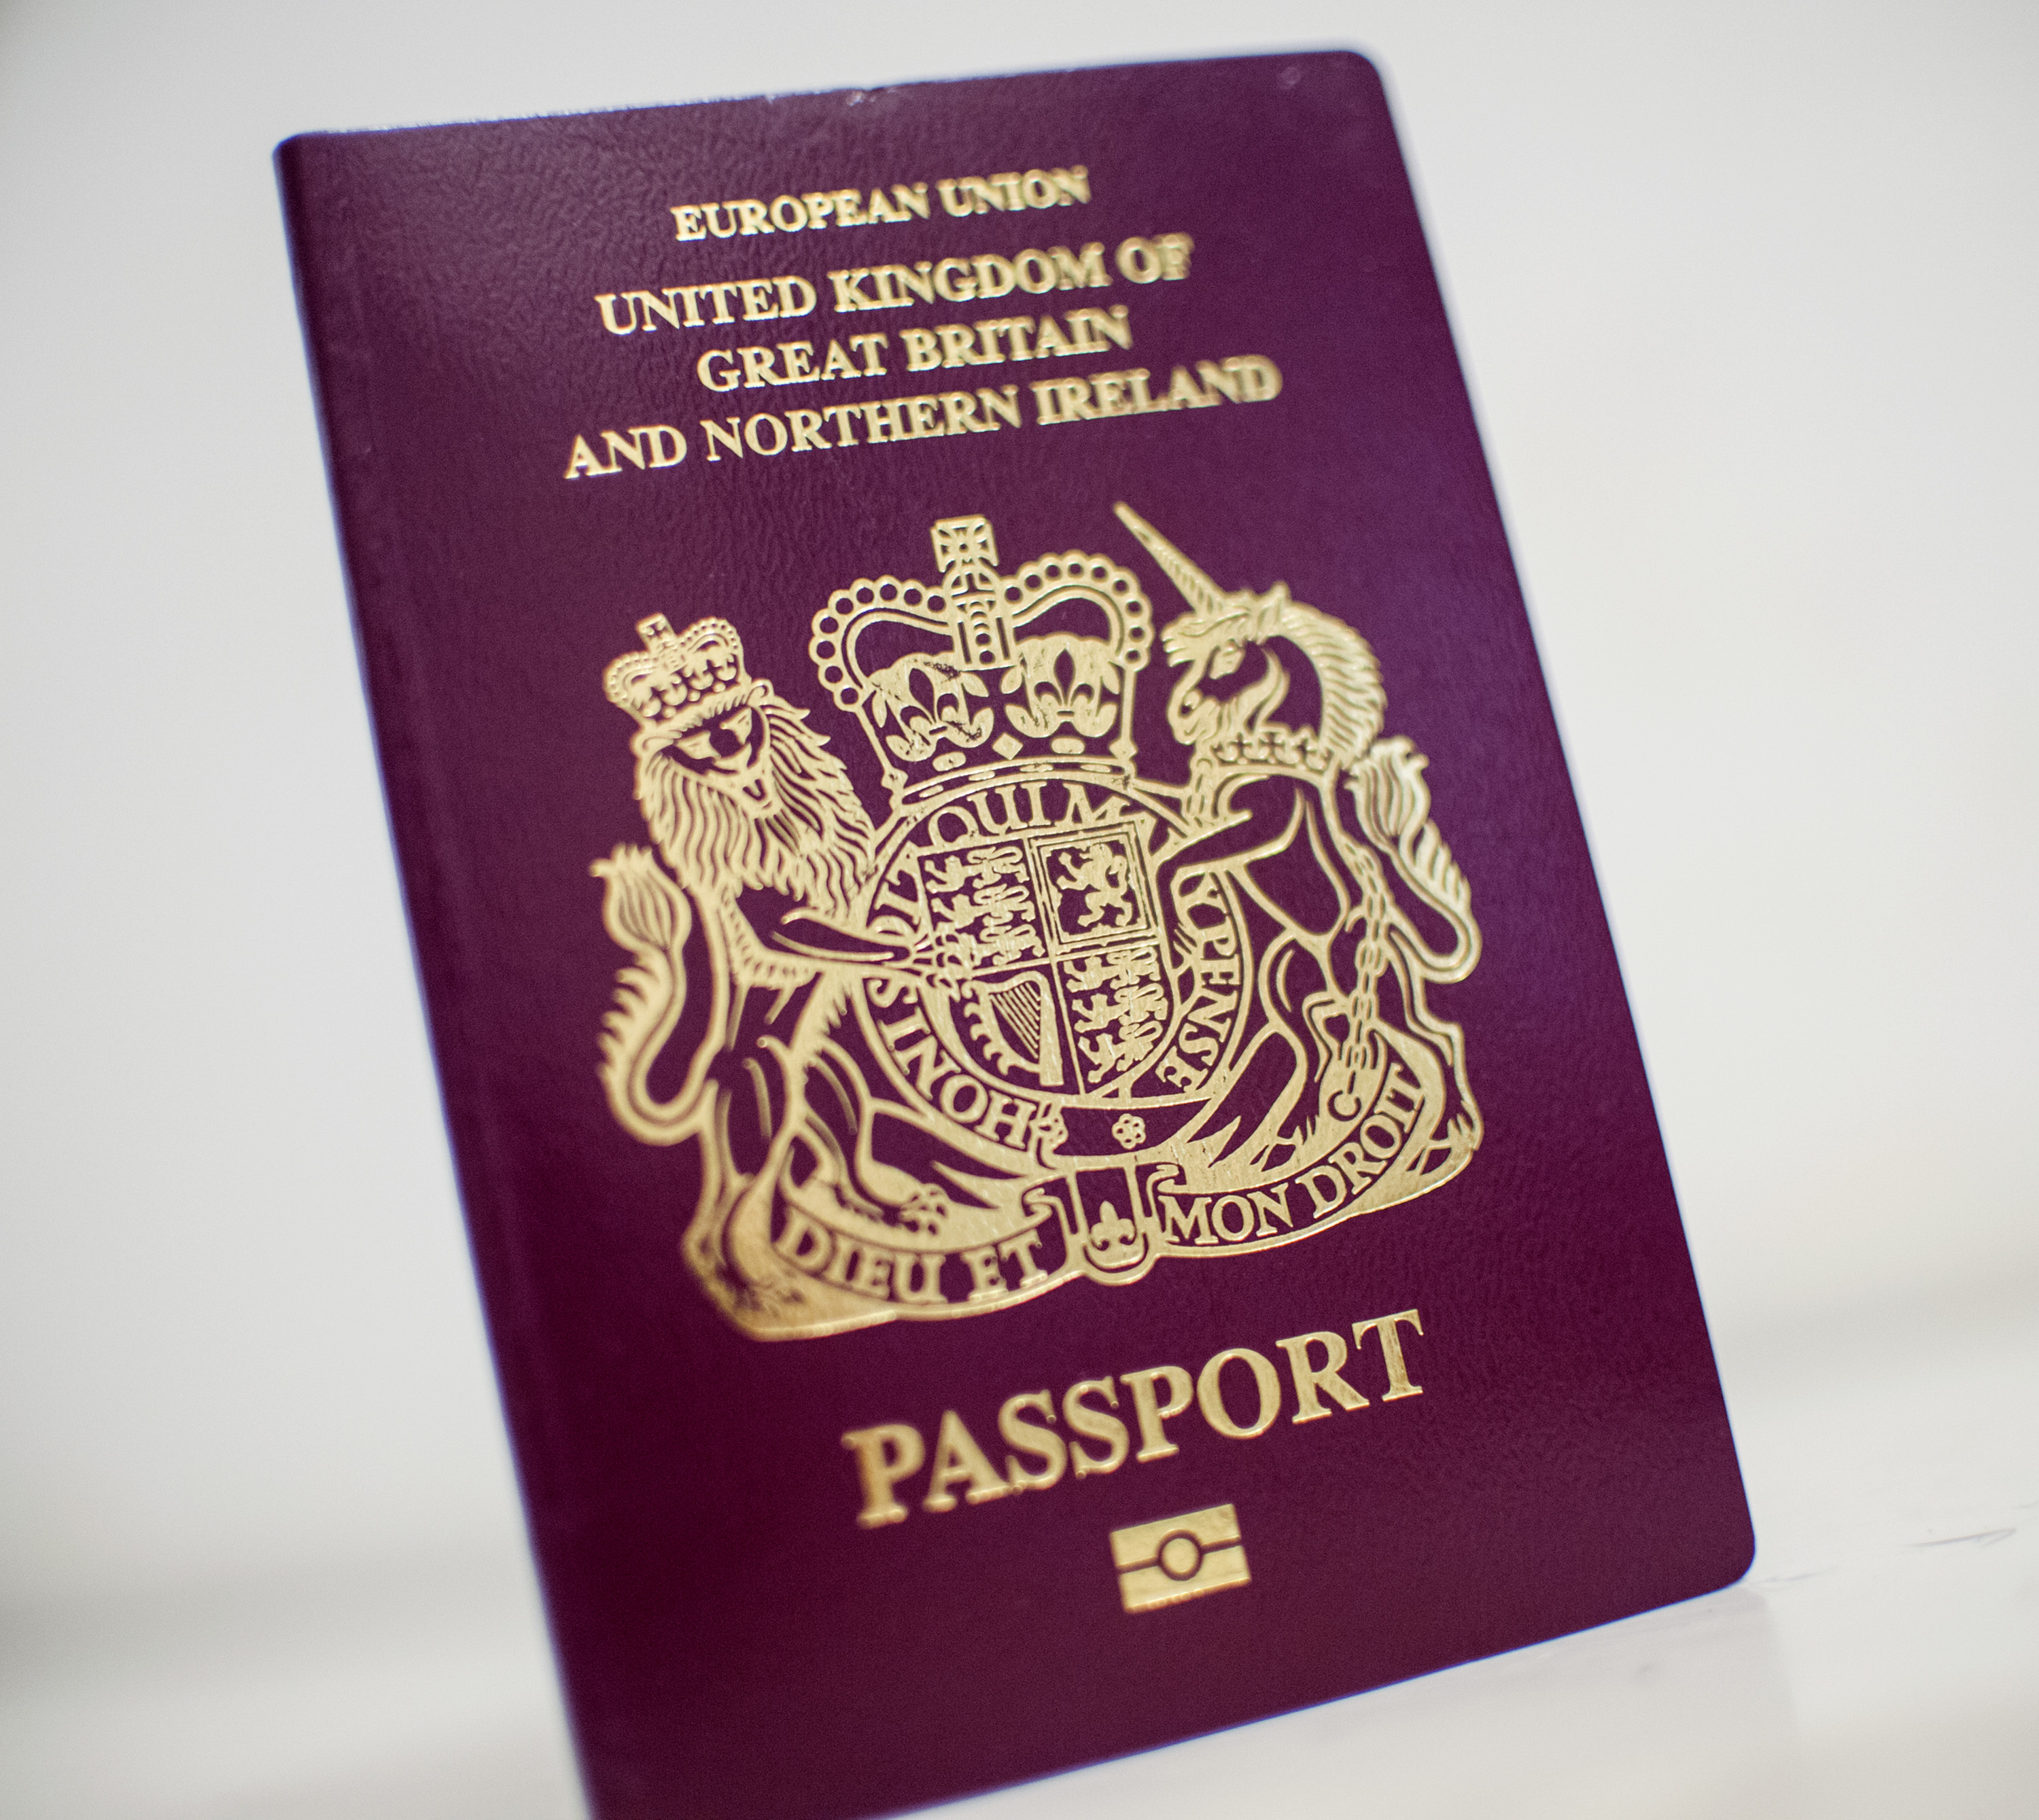 The British passport has dropped to sixth place this year. Credit PA